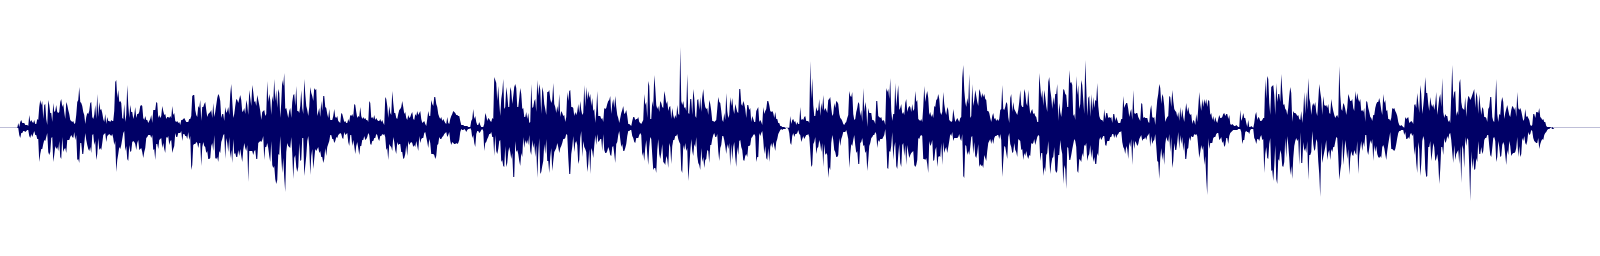 waveform of track #129882